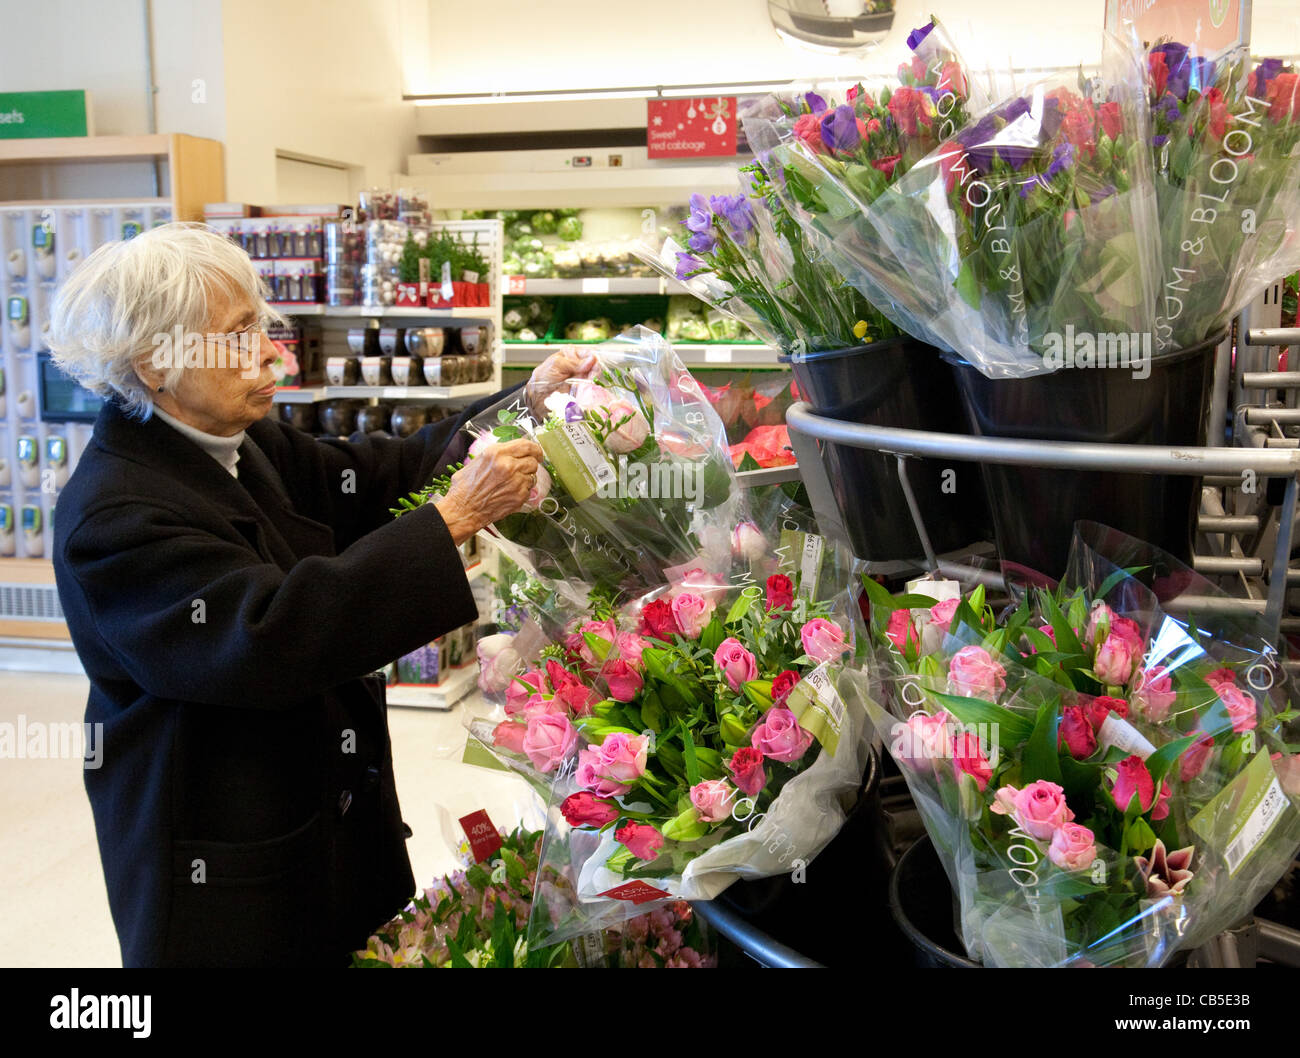 Elderly woman buying flowers stock photos elderly woman buying elderly lady buying flowers in a waitrose supermarket newmarket uk stock image izmirmasajfo